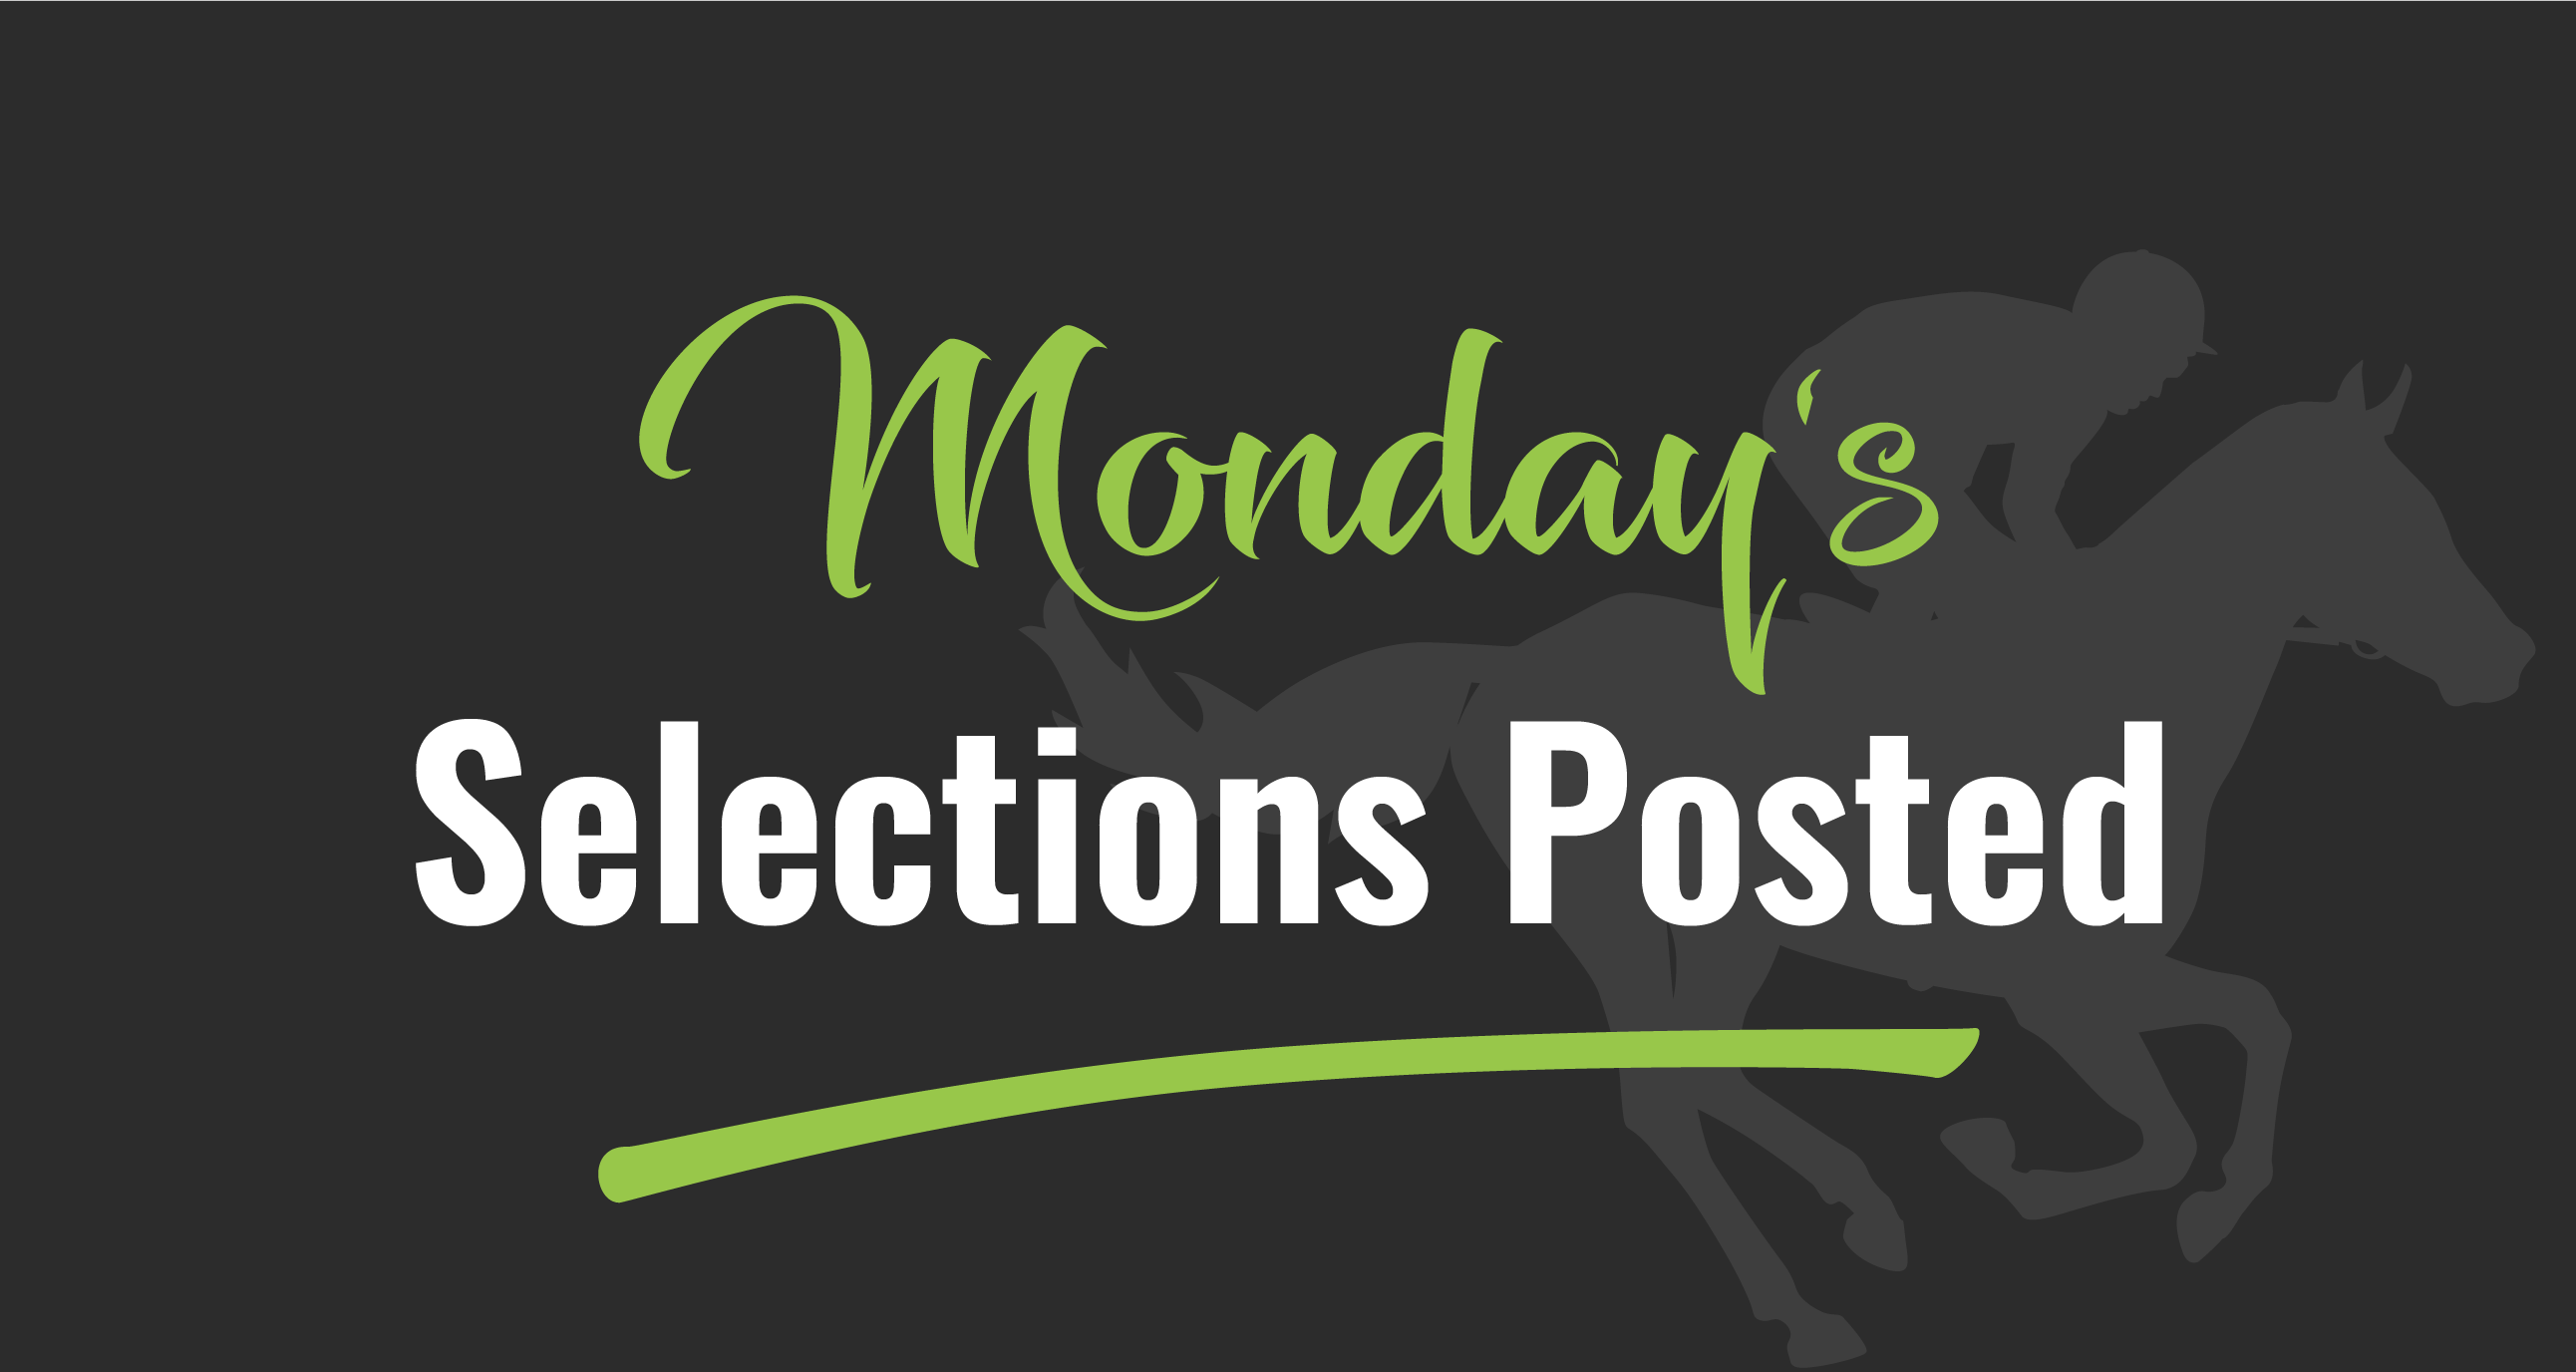 Selections for Monday 9 December 2019